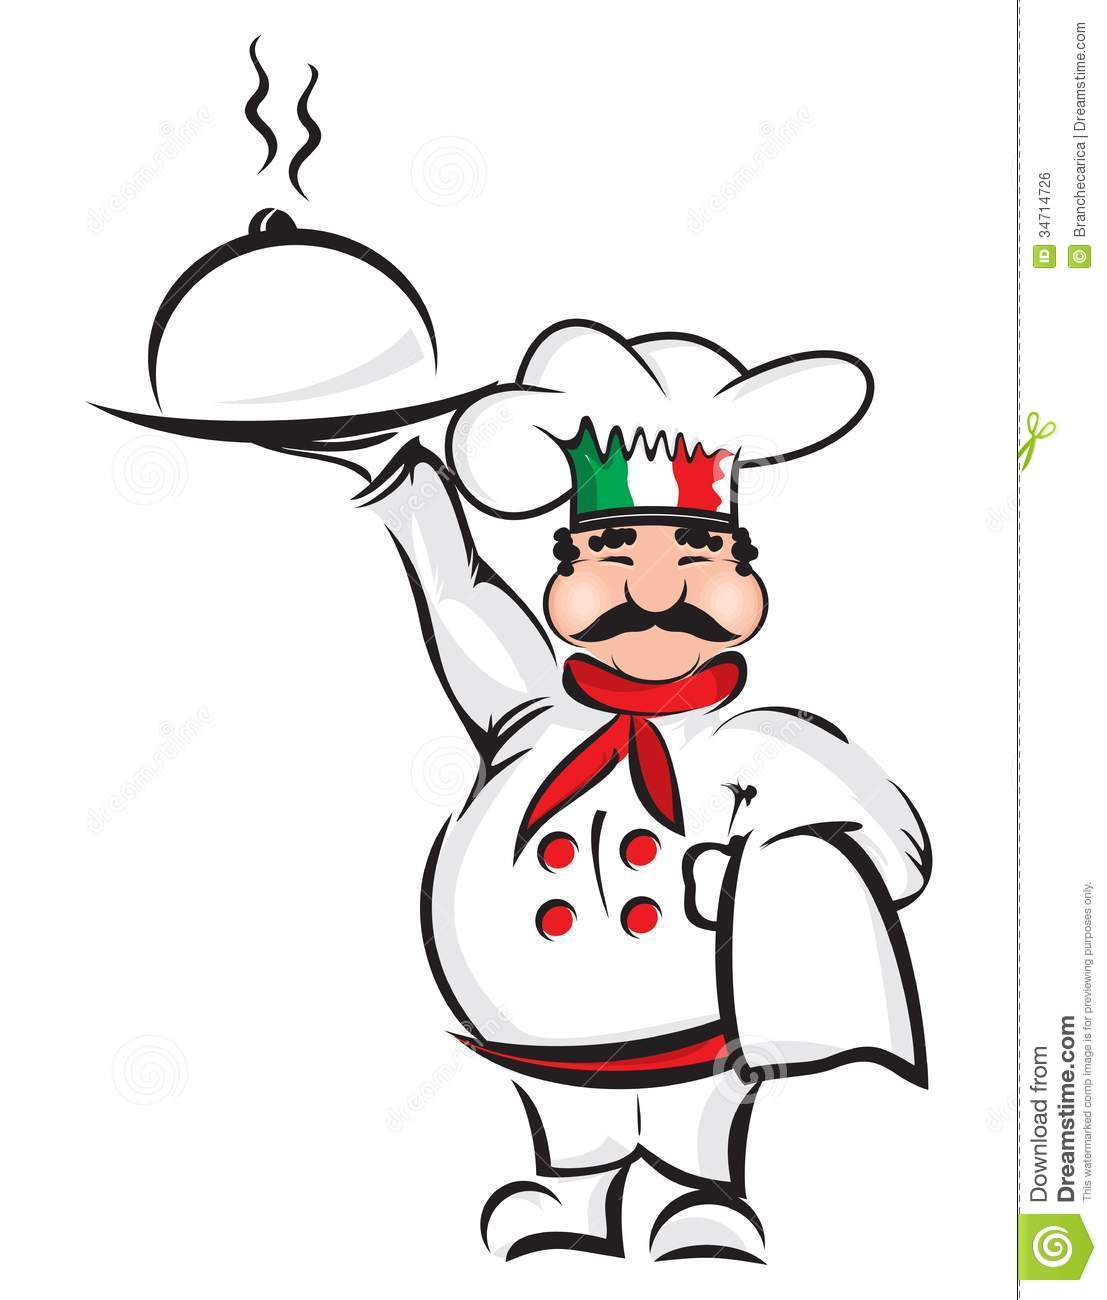 Chef Royalty Free Stock Image - Image: 34714726